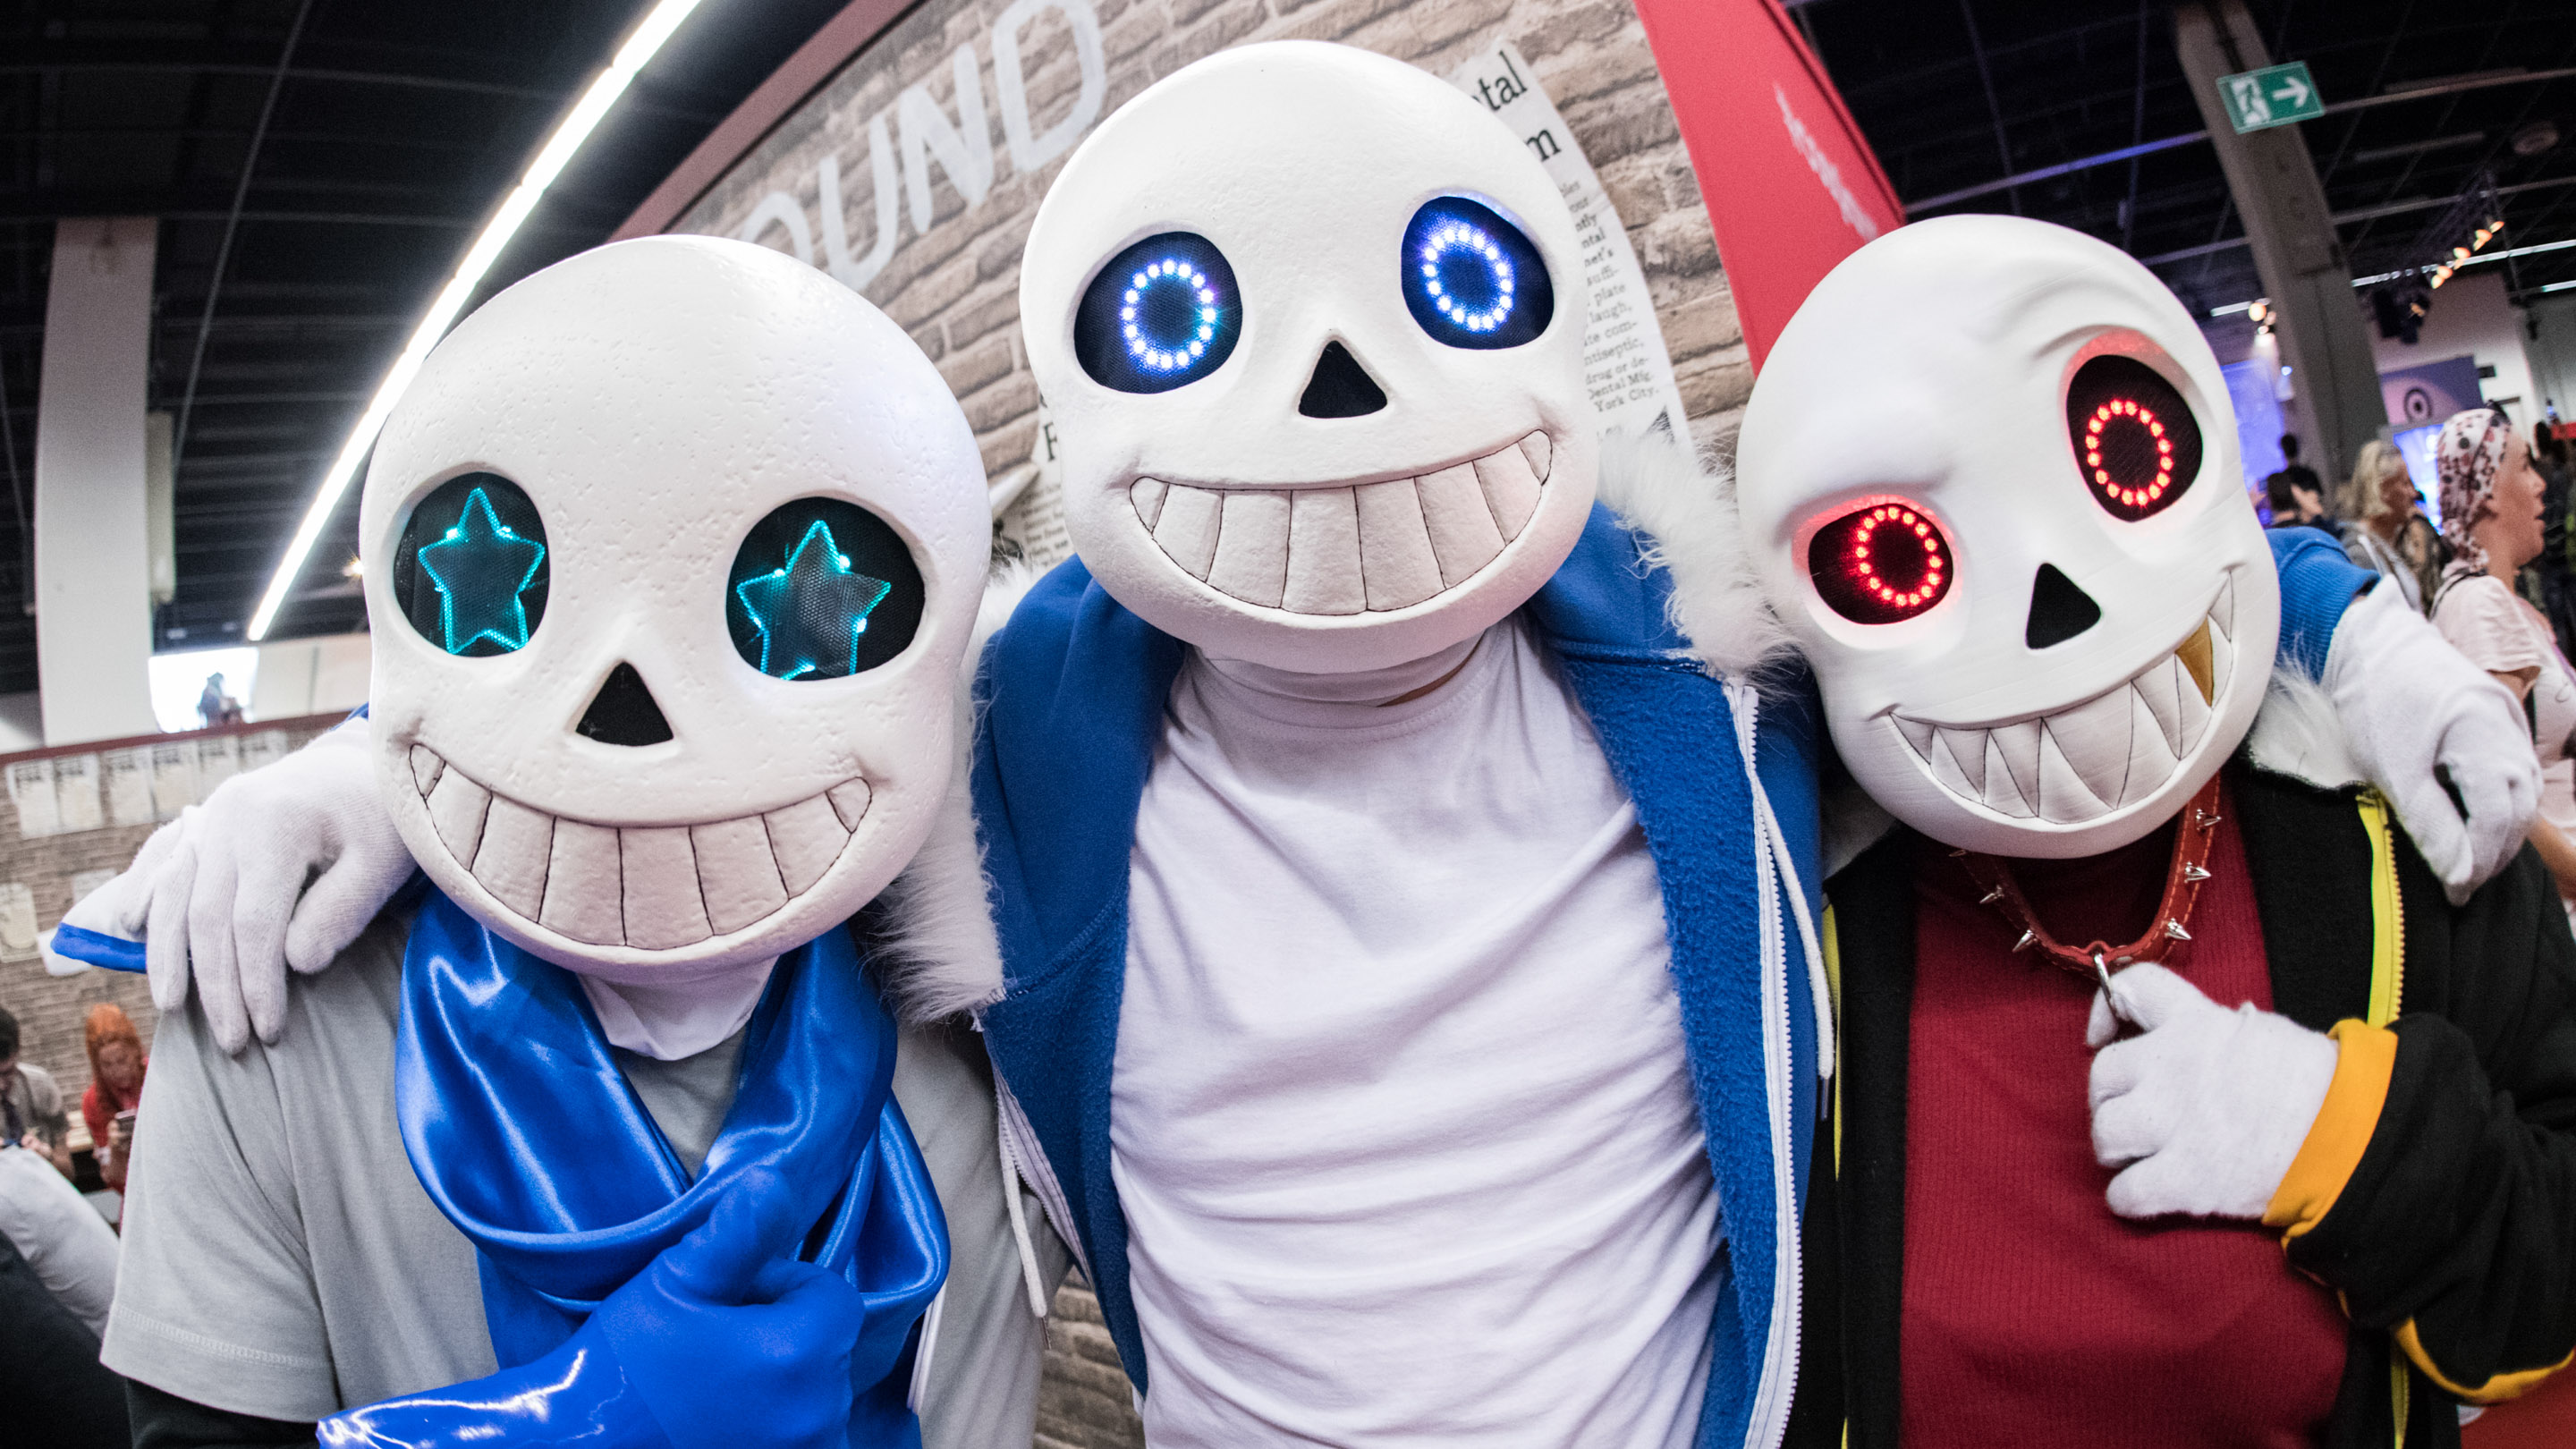 Cosplay Village, Charakter: Red, Blueberry & Classic, Halle 5.1, gamescom 2019